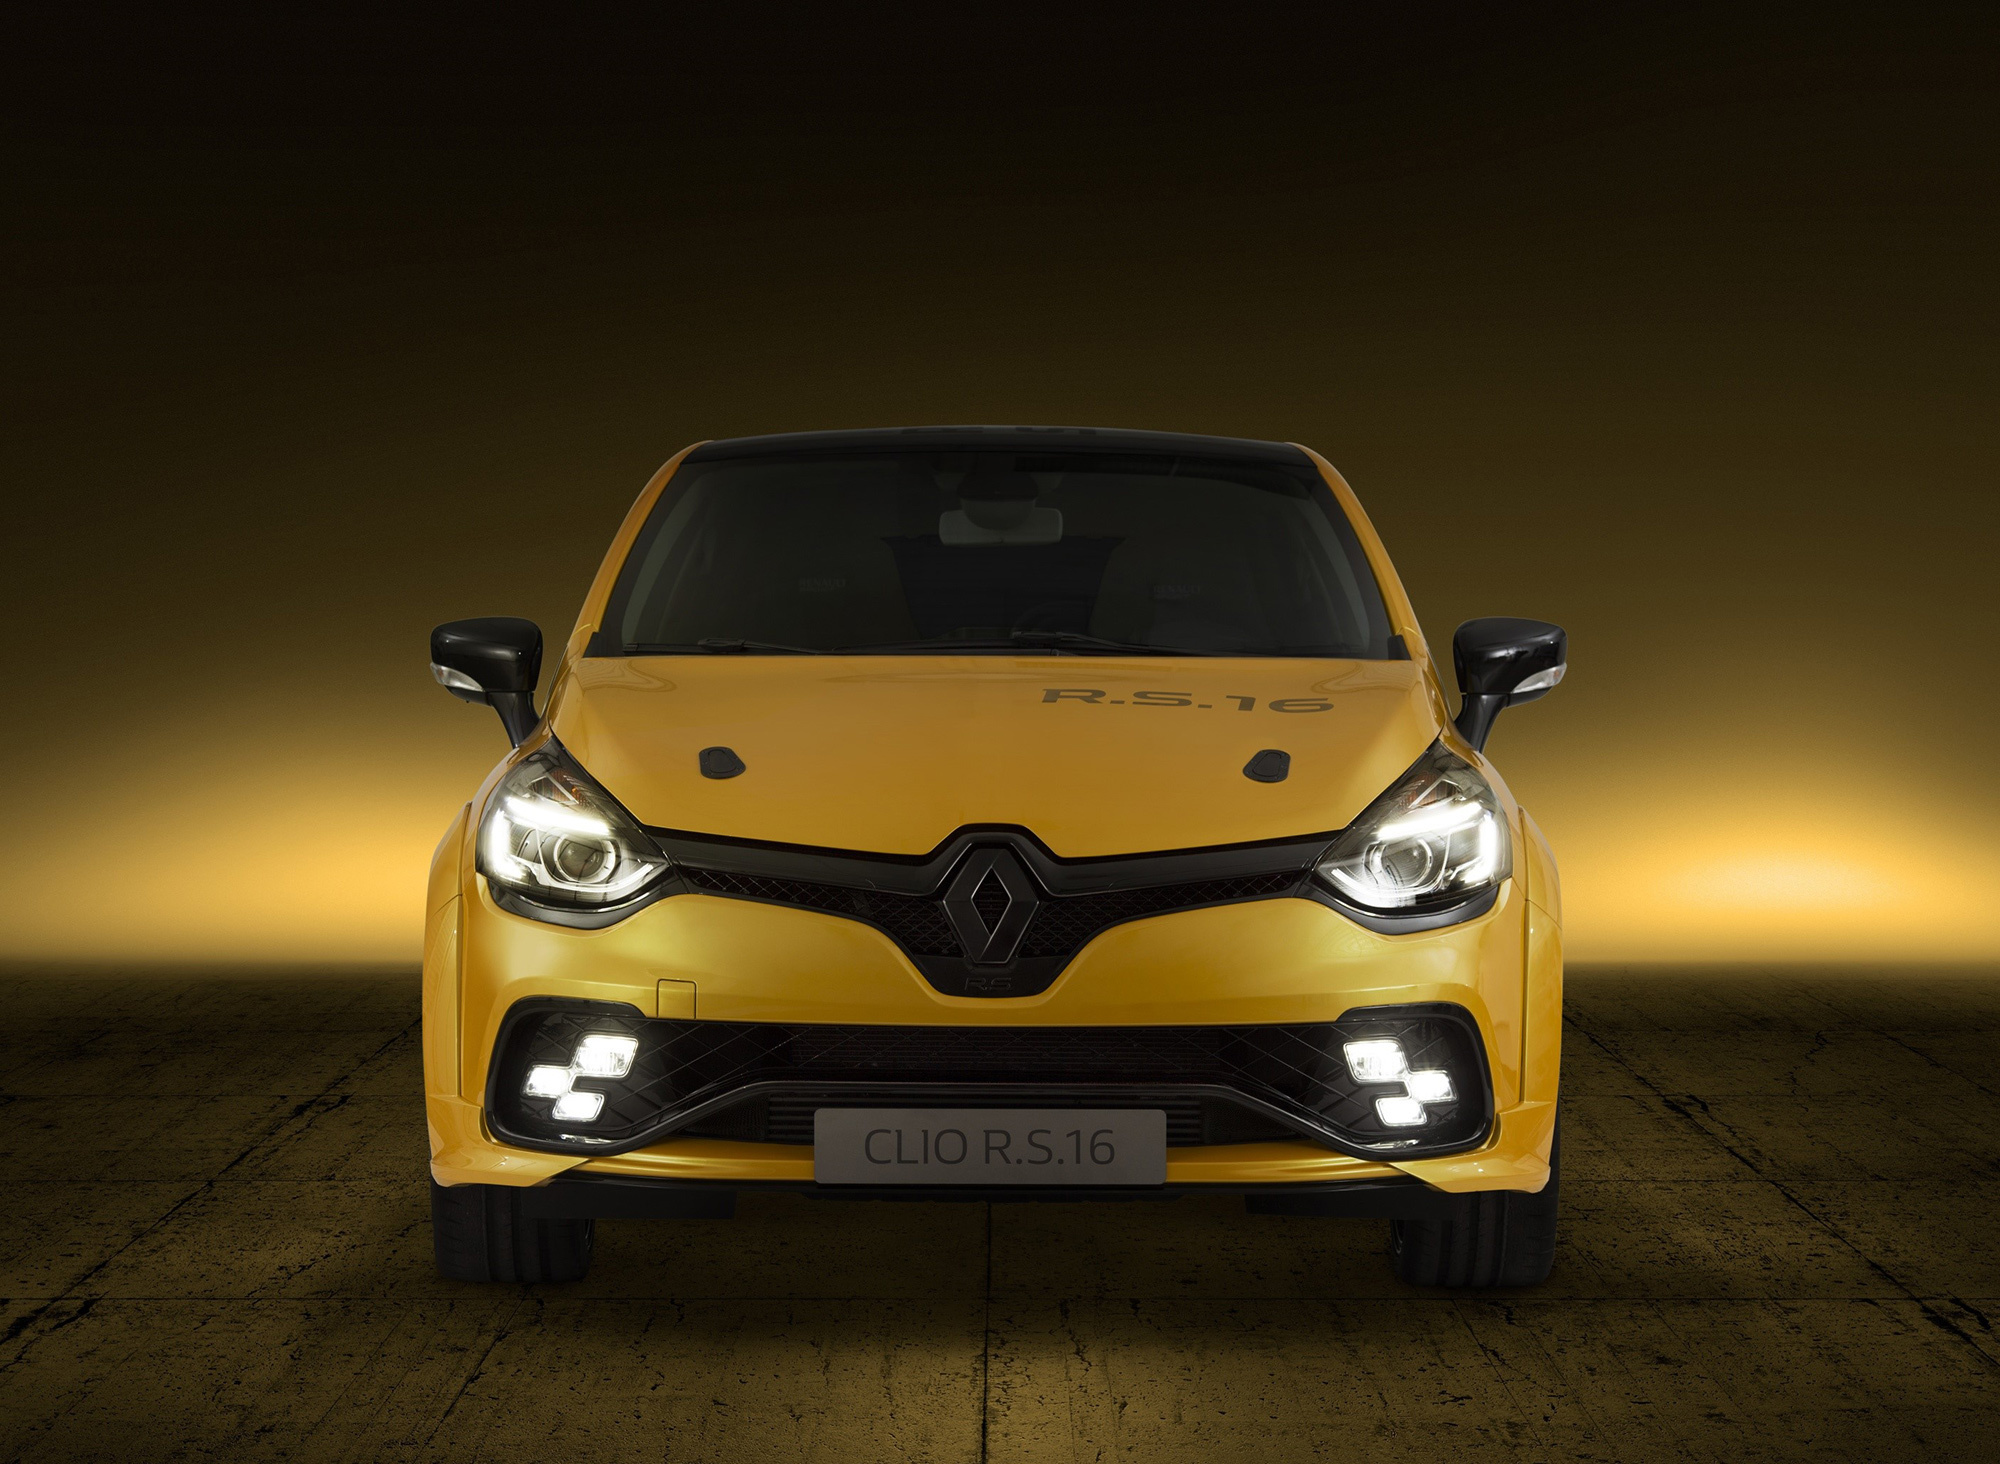 renault clio rs wallpapers images photos pictures backgrounds. Black Bedroom Furniture Sets. Home Design Ideas